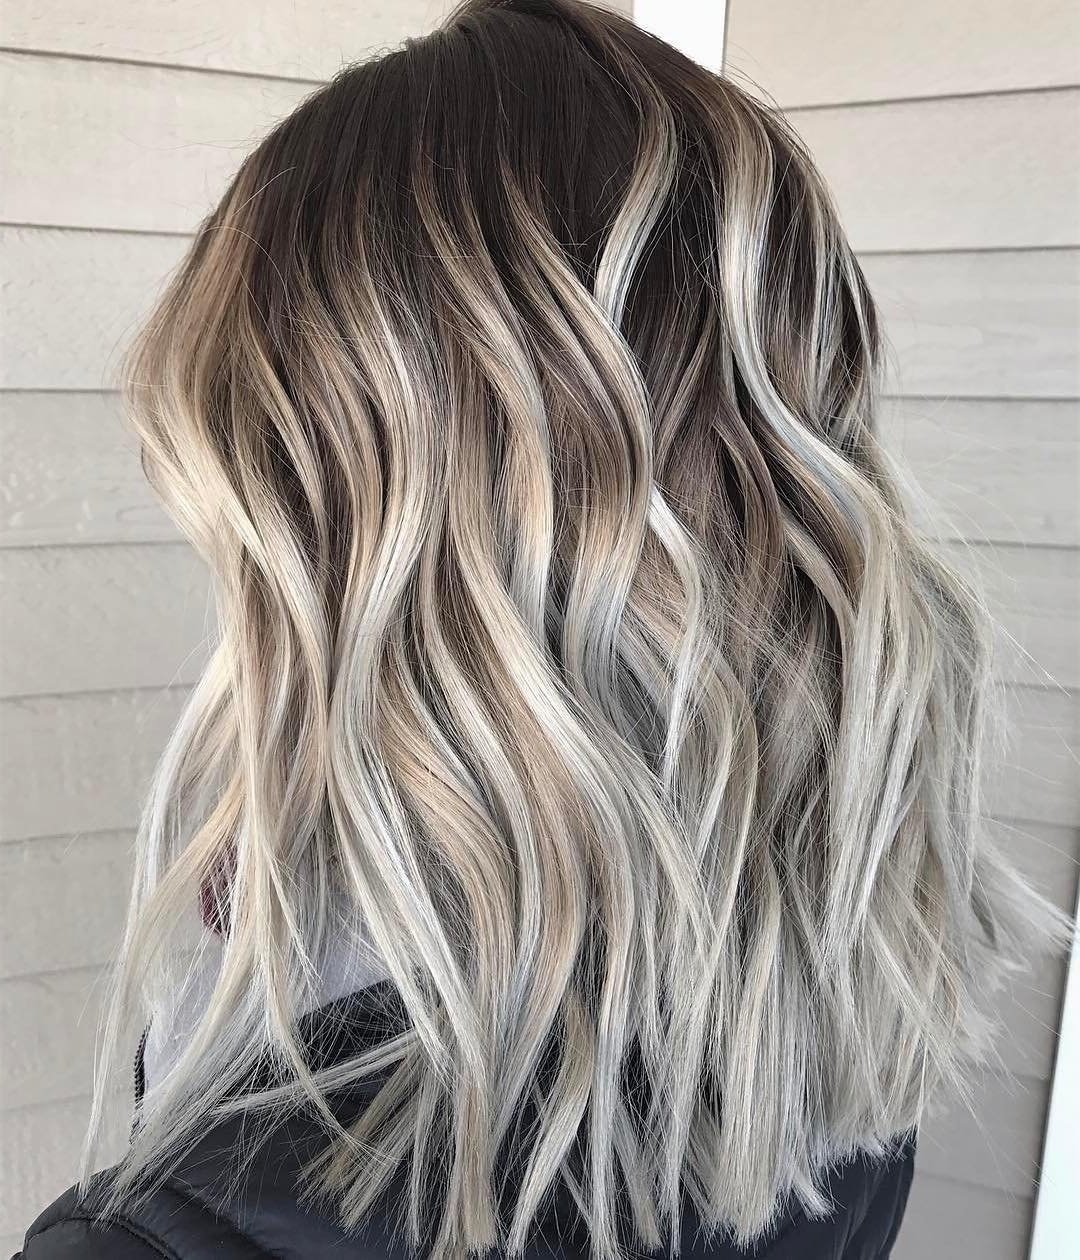 10 Best Medium Hairstyles For Women – Shoulder Length Hair Cuts 2018 With Trendy Multi Tonal Mid Length Blonde Hairstyles (View 4 of 20)